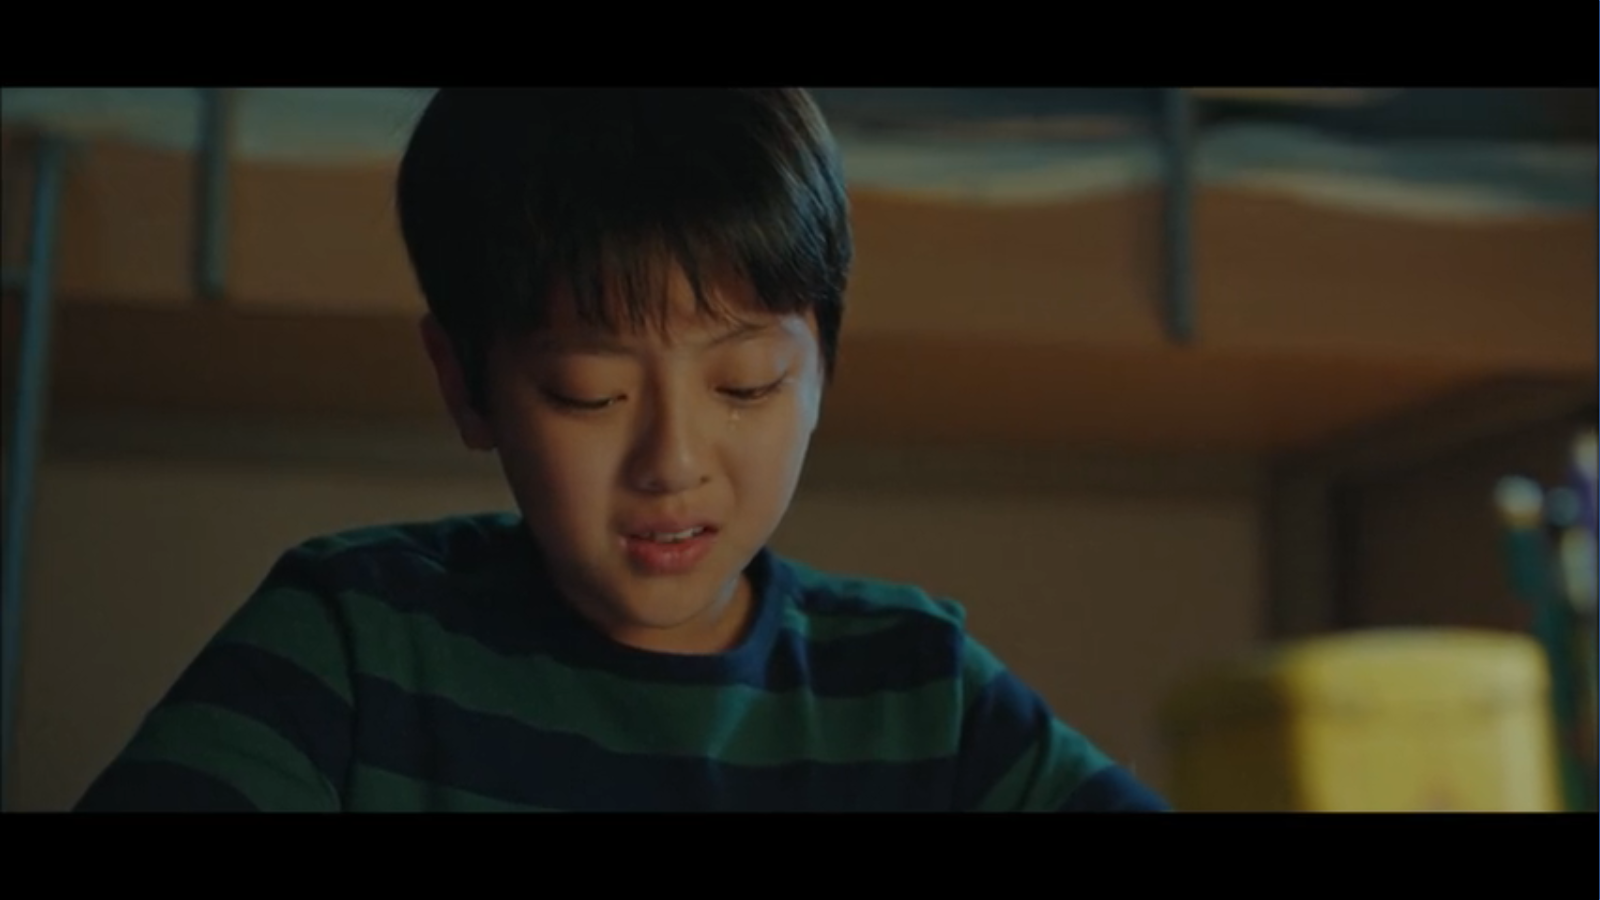 When My Love Blooms Episode 2 Lee Young-min crying in room ripped book